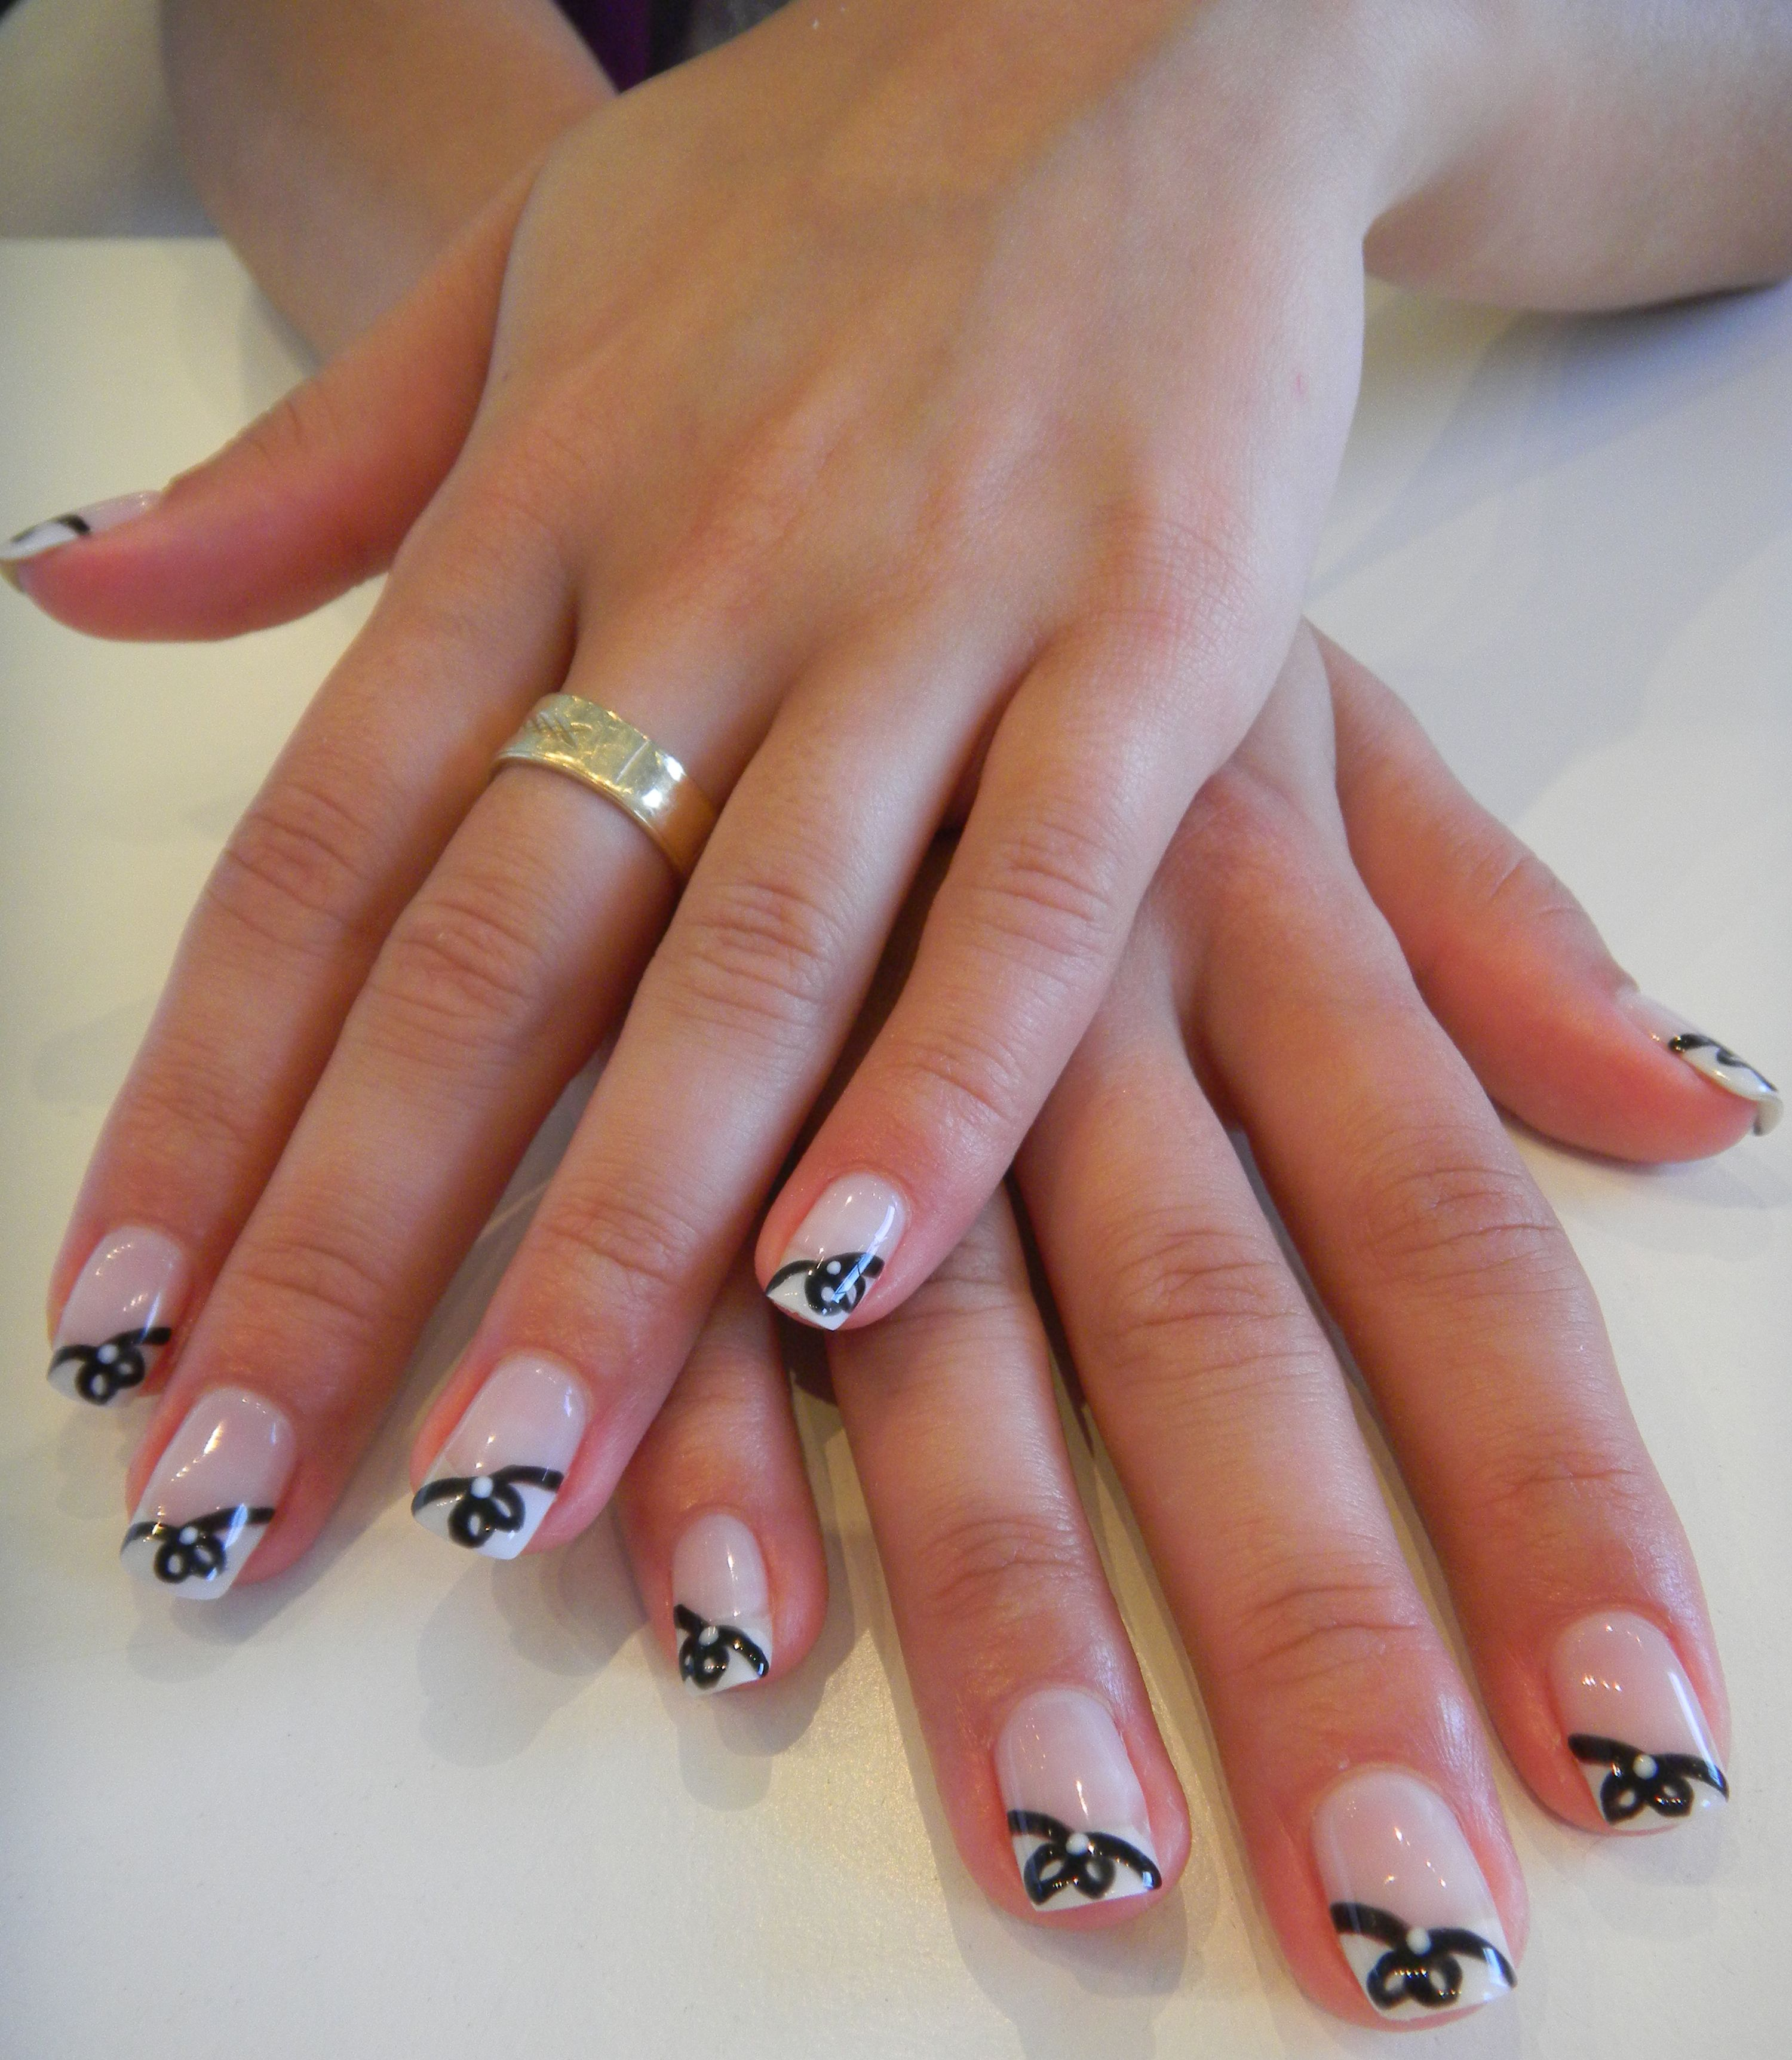 Nails can also be wrapped up in a pretty little package =) Seen here ...